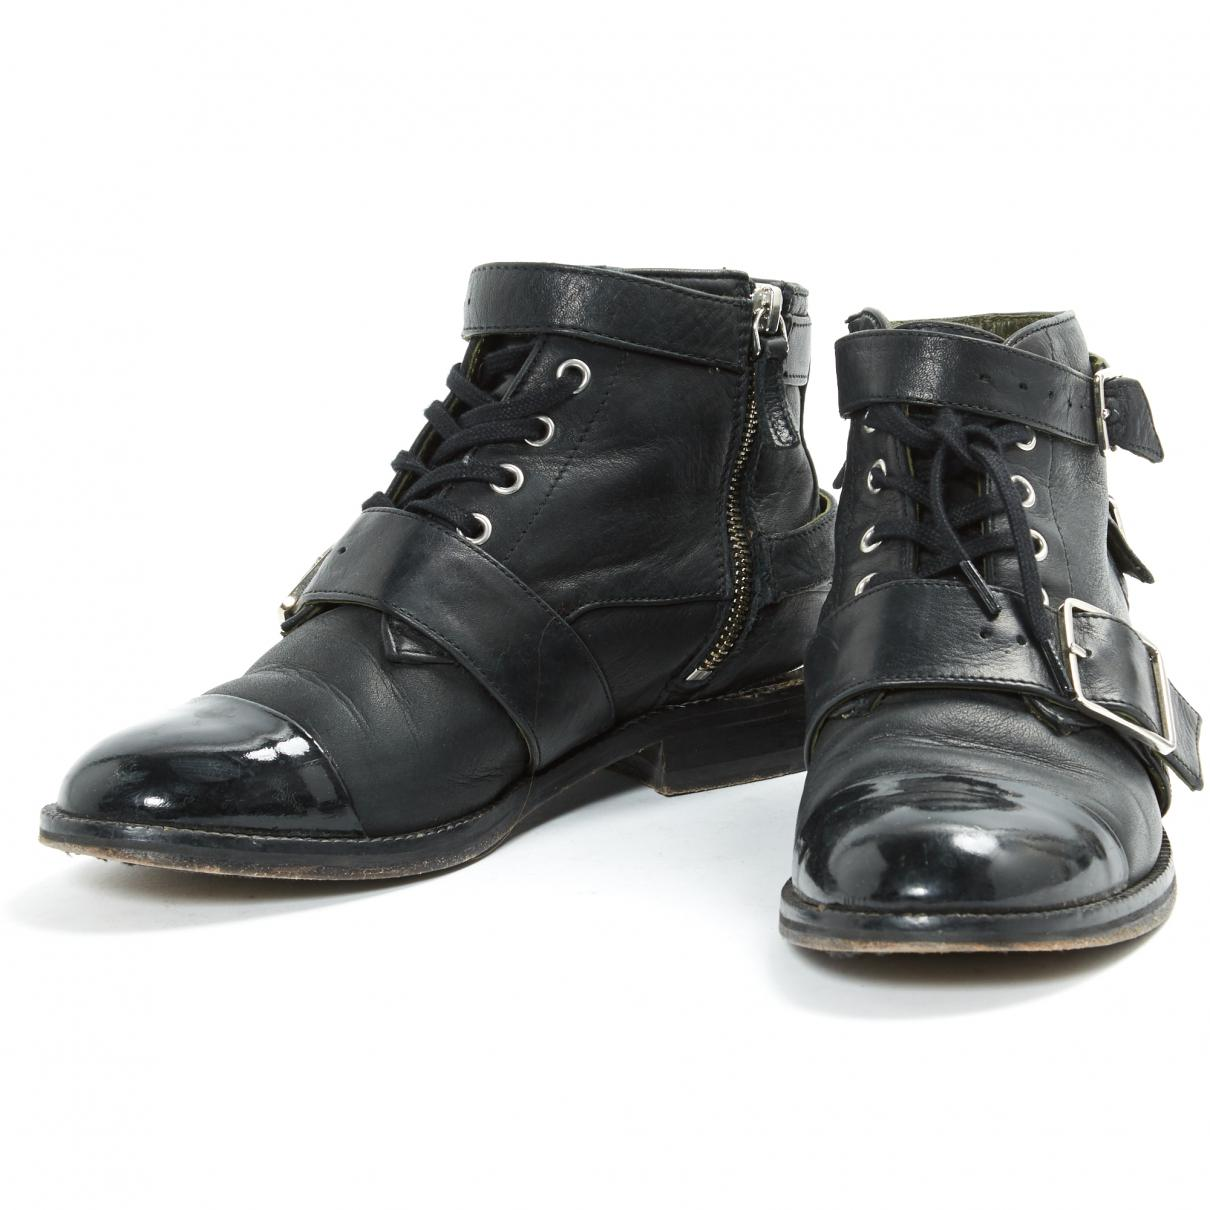 8451cb2c06 The Kooples - Pre-owned Black Leather Ankle Boots - Lyst. View fullscreen